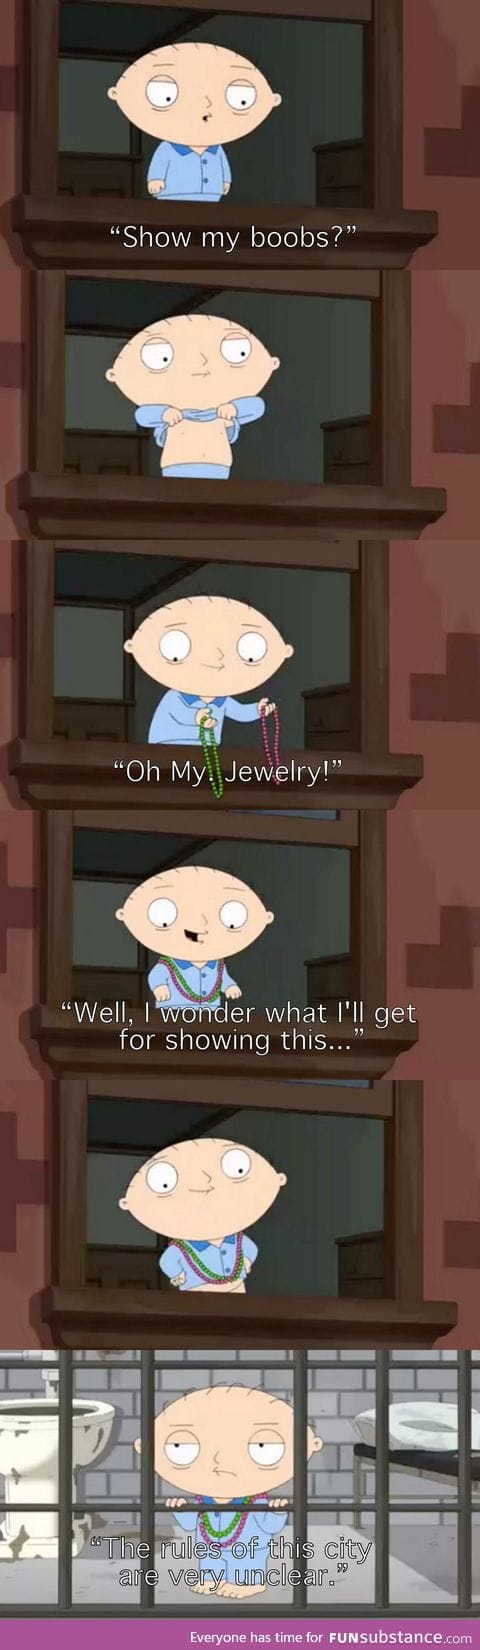 Stewie is right about New Orleans